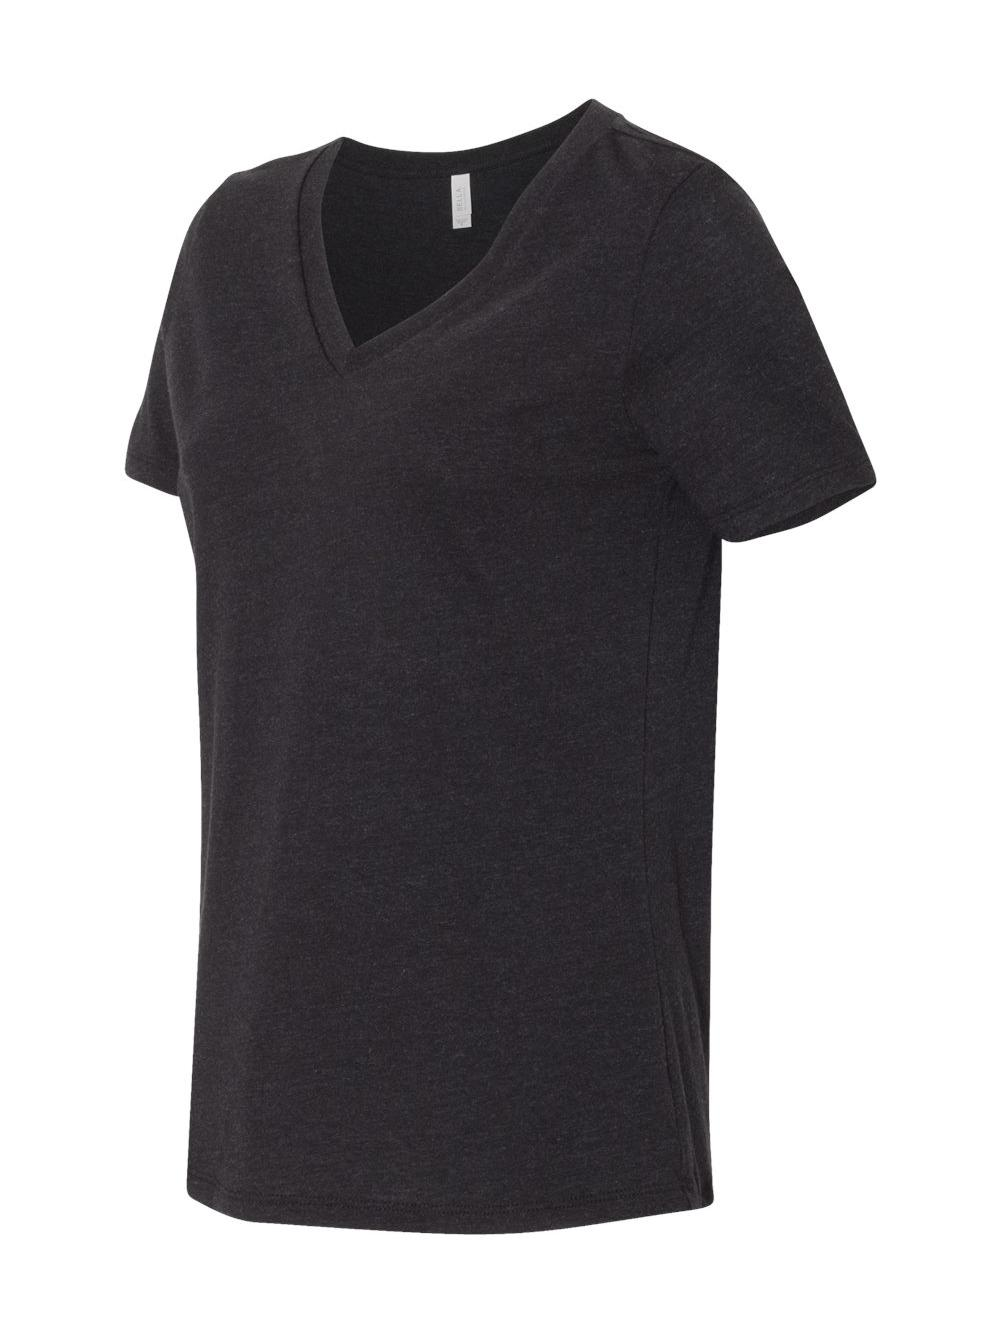 Bella-Canvas-Women-039-s-Relaxed-Short-Sleeve-Jersey-V-Neck-Tee-6405 thumbnail 12